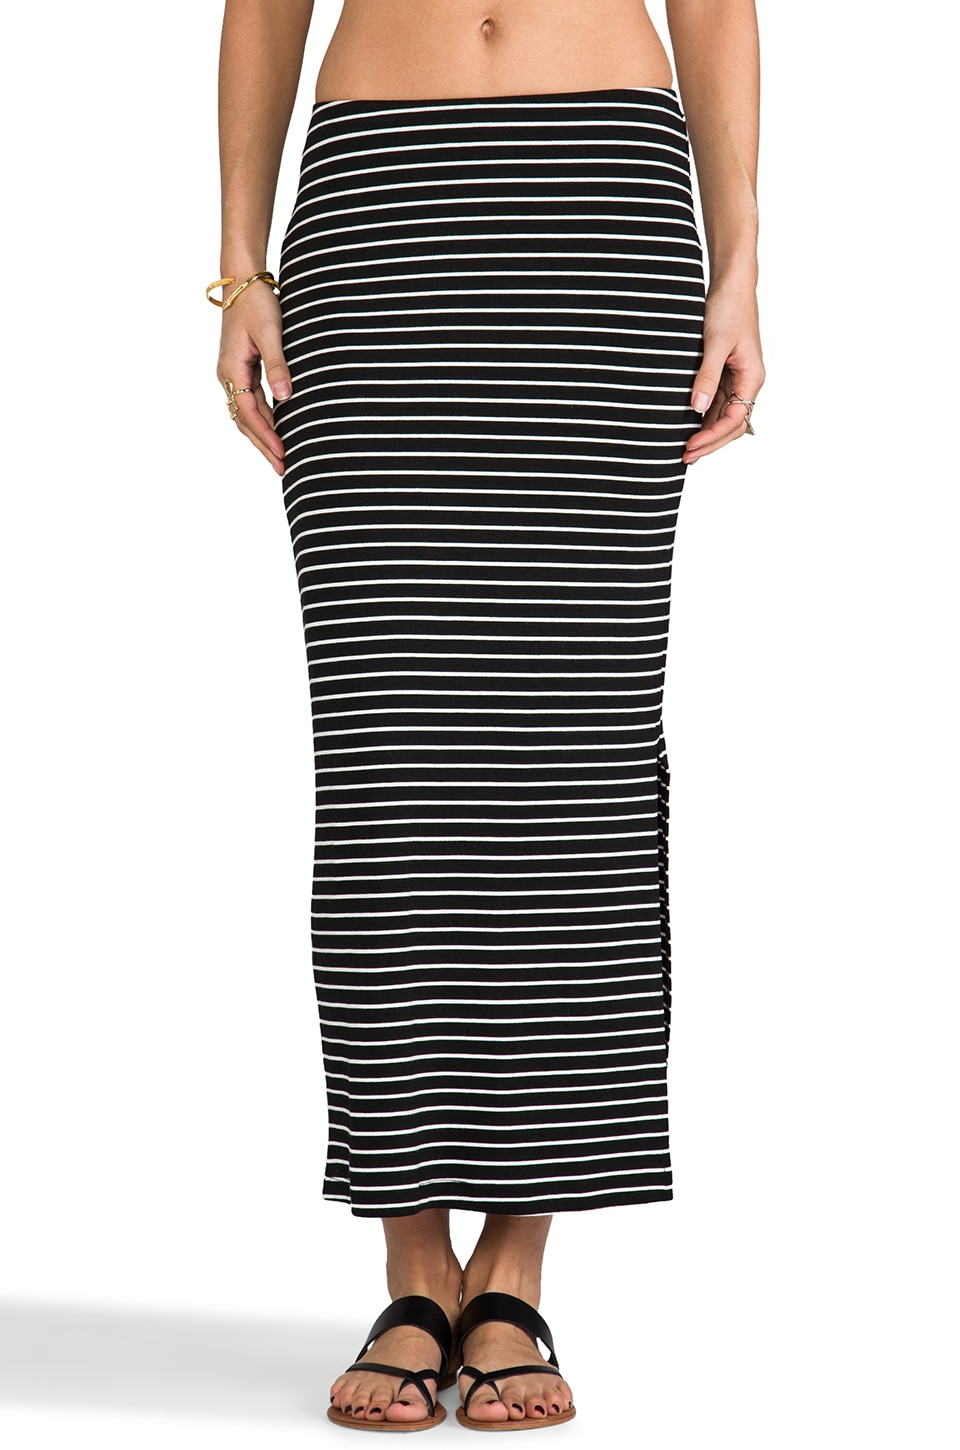 Kain Harris Skirt in Black/White Stripe